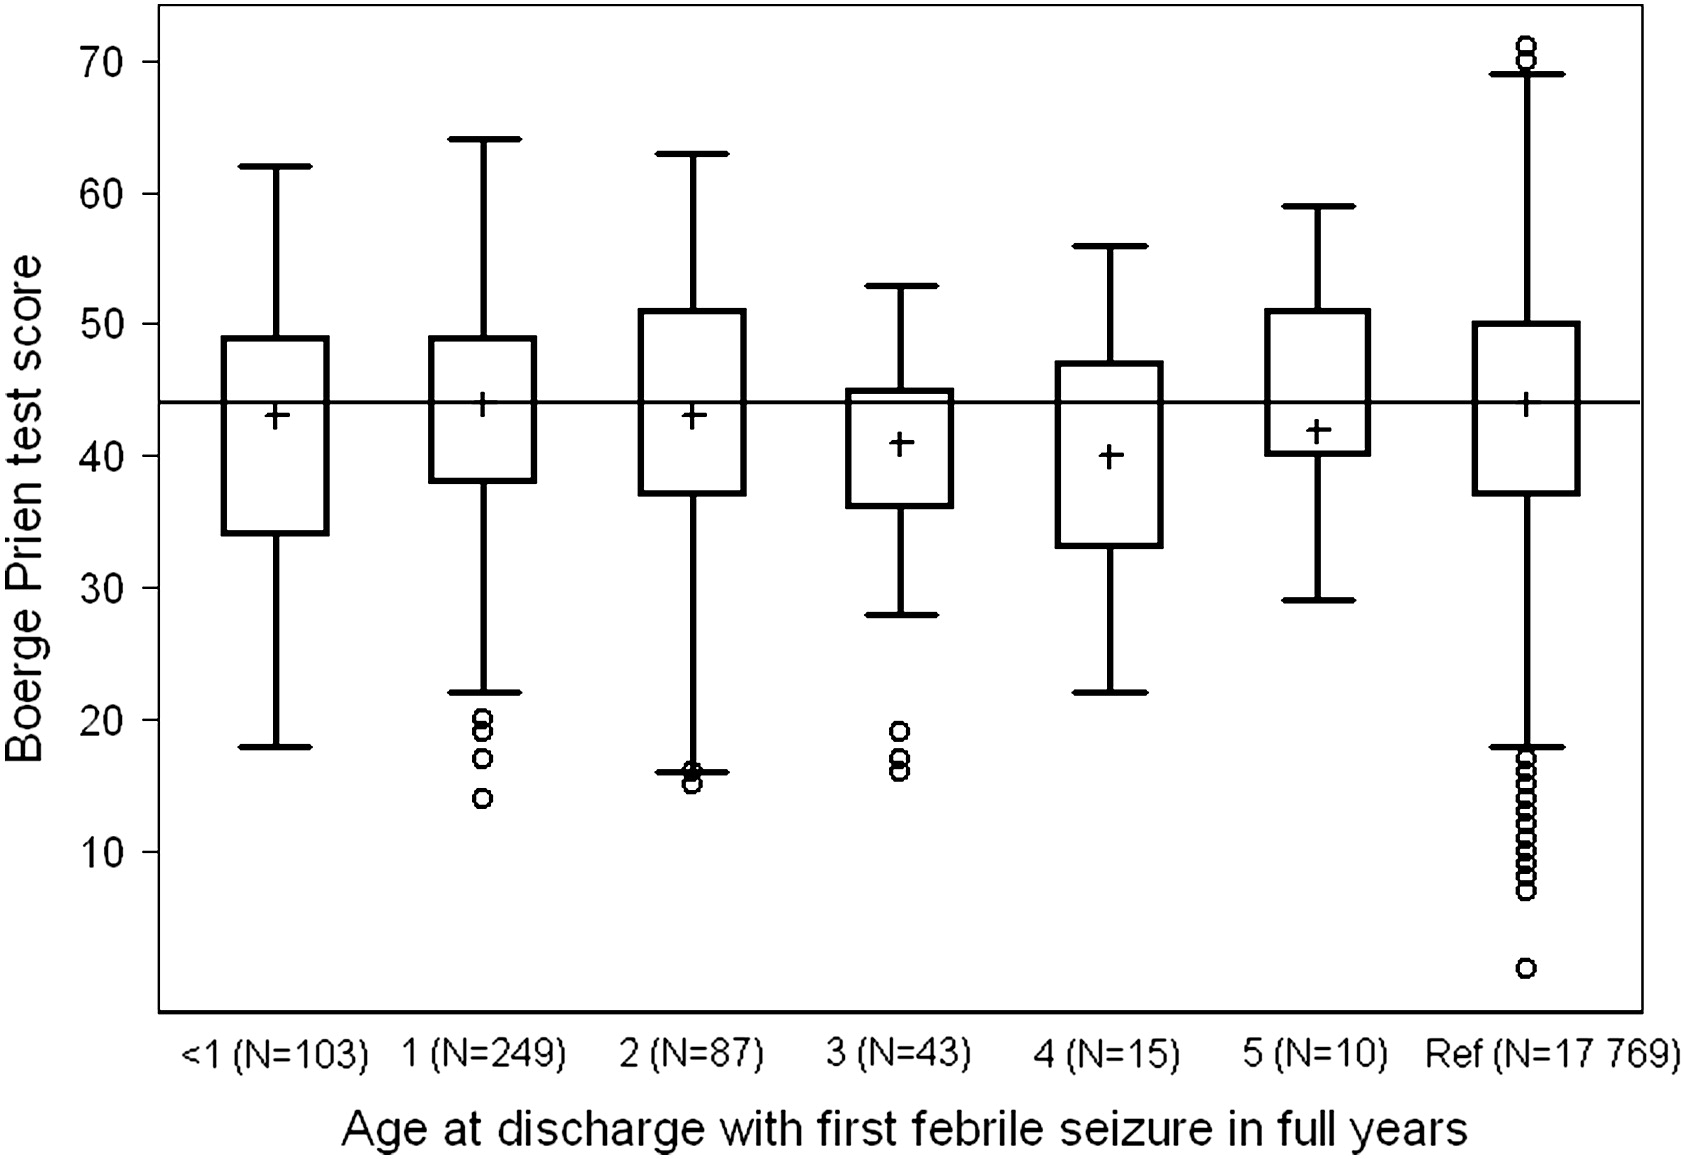 Febrile Seizures and Cognitive Function in Young Adult